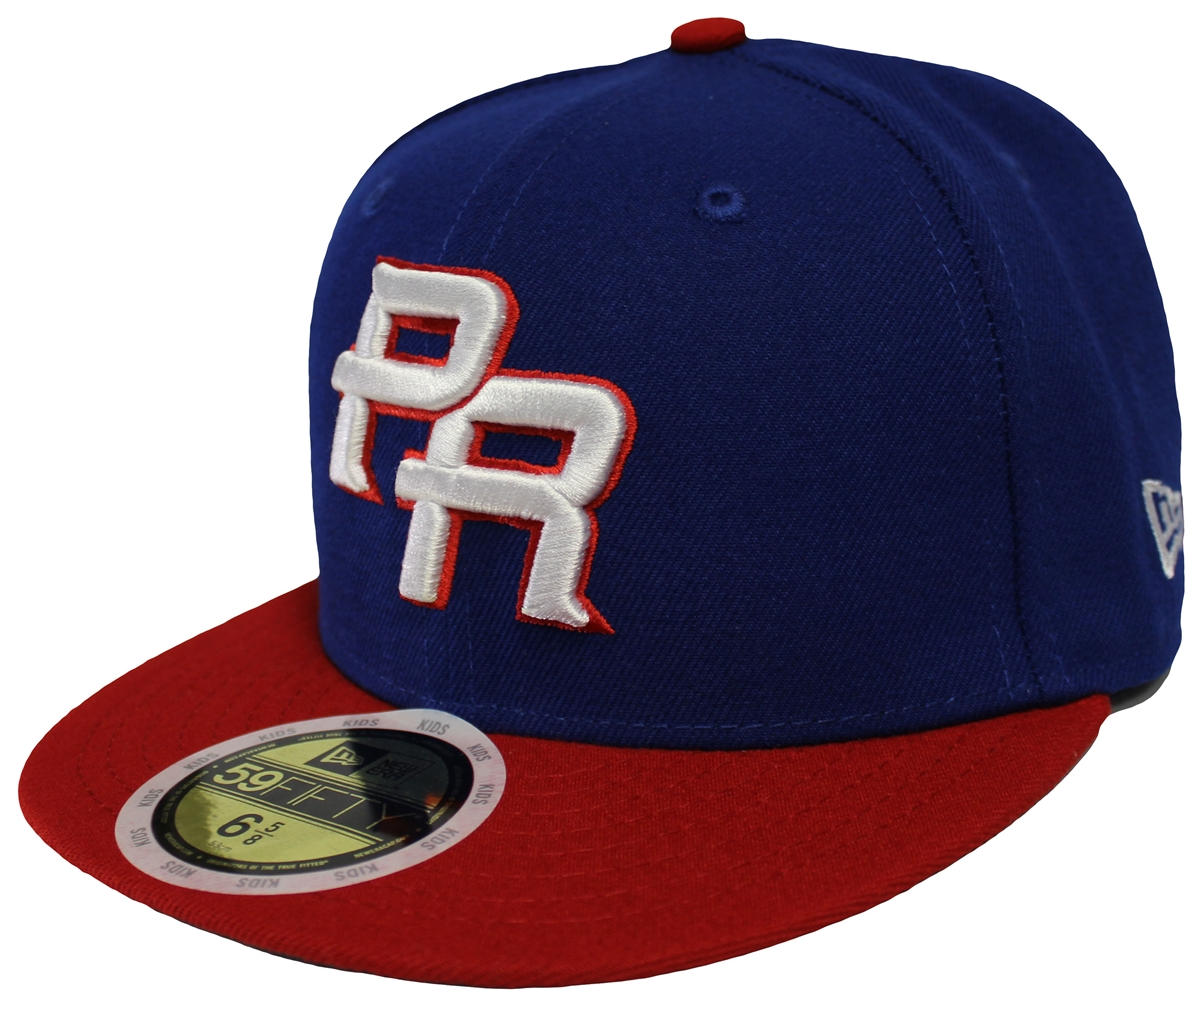 NEW ERA 59Fifty Mens Puerto Rico 2017 WBC World Baseball ... 73f2027ed004